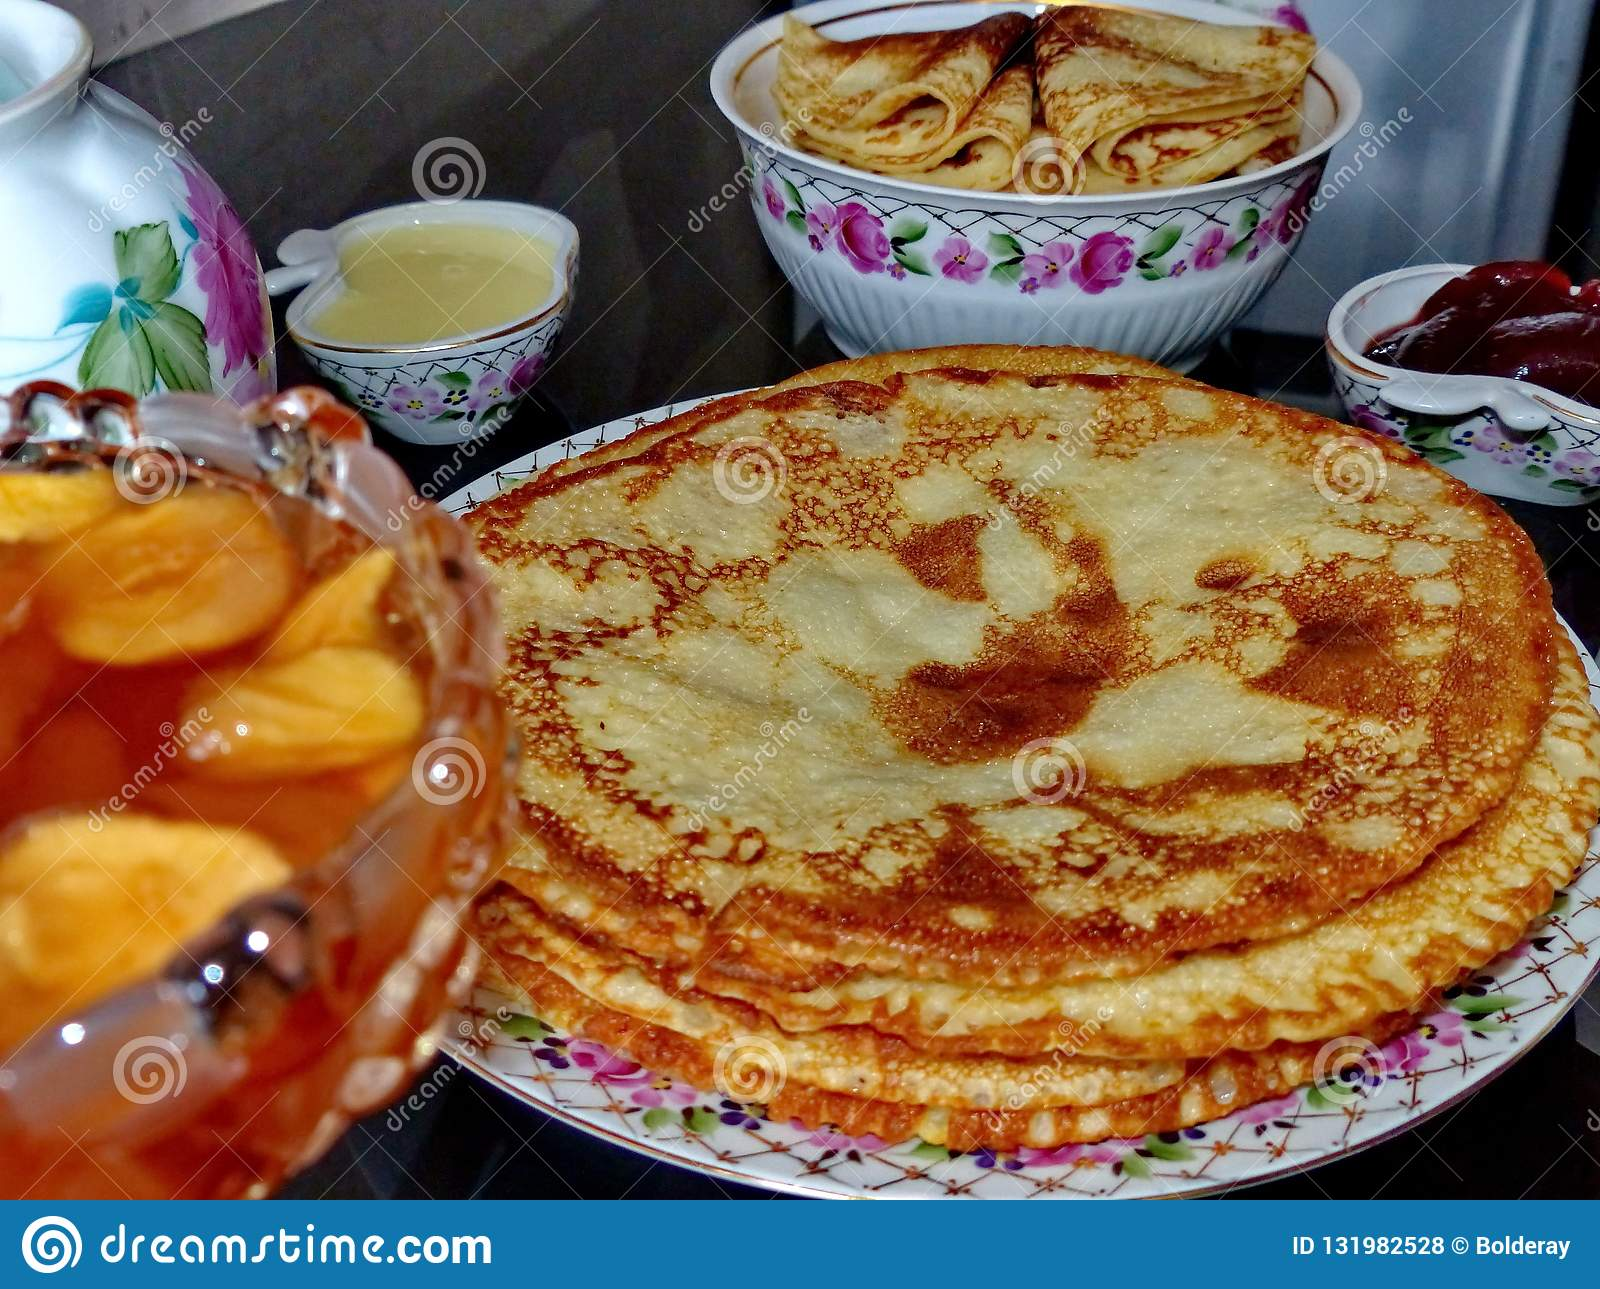 Russian blini pancakes and apple jam, condensed milk, honey. Celebration of Maslenitsa. Maslenitsa is an Eastern